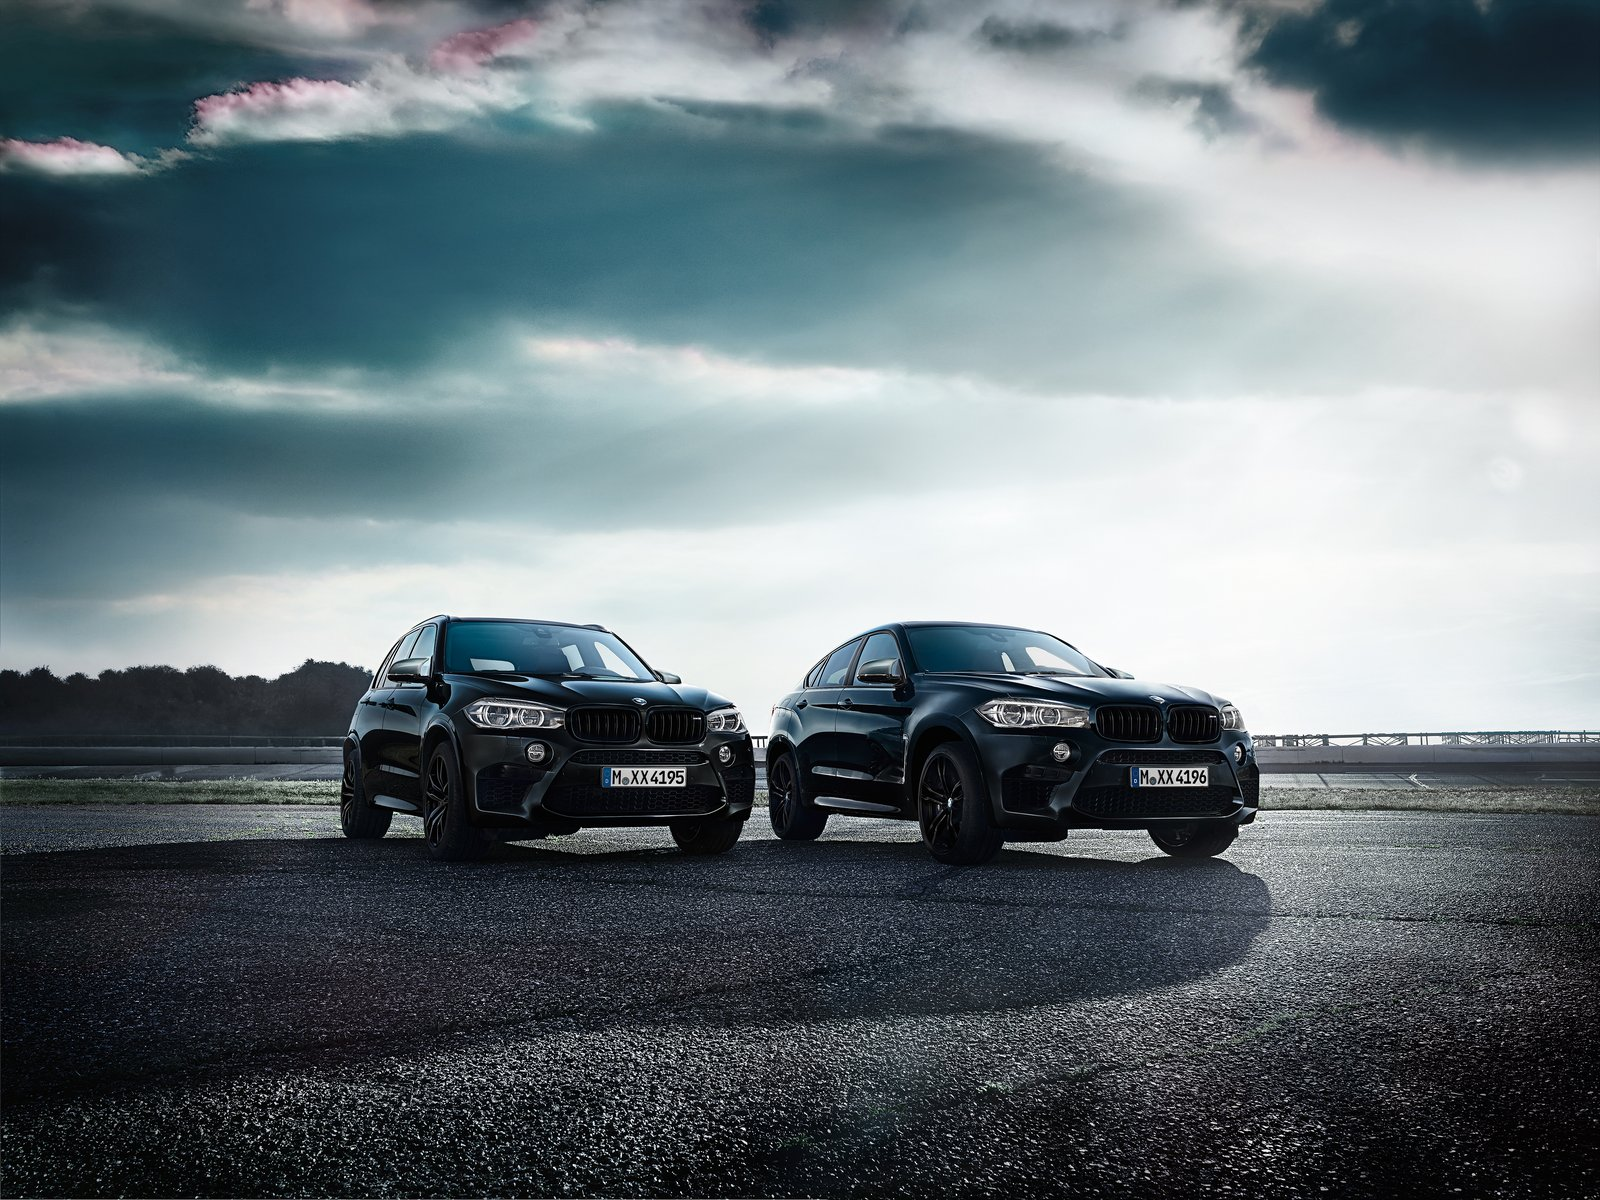 BMW-X5-M-Black-Fire-Edition-13